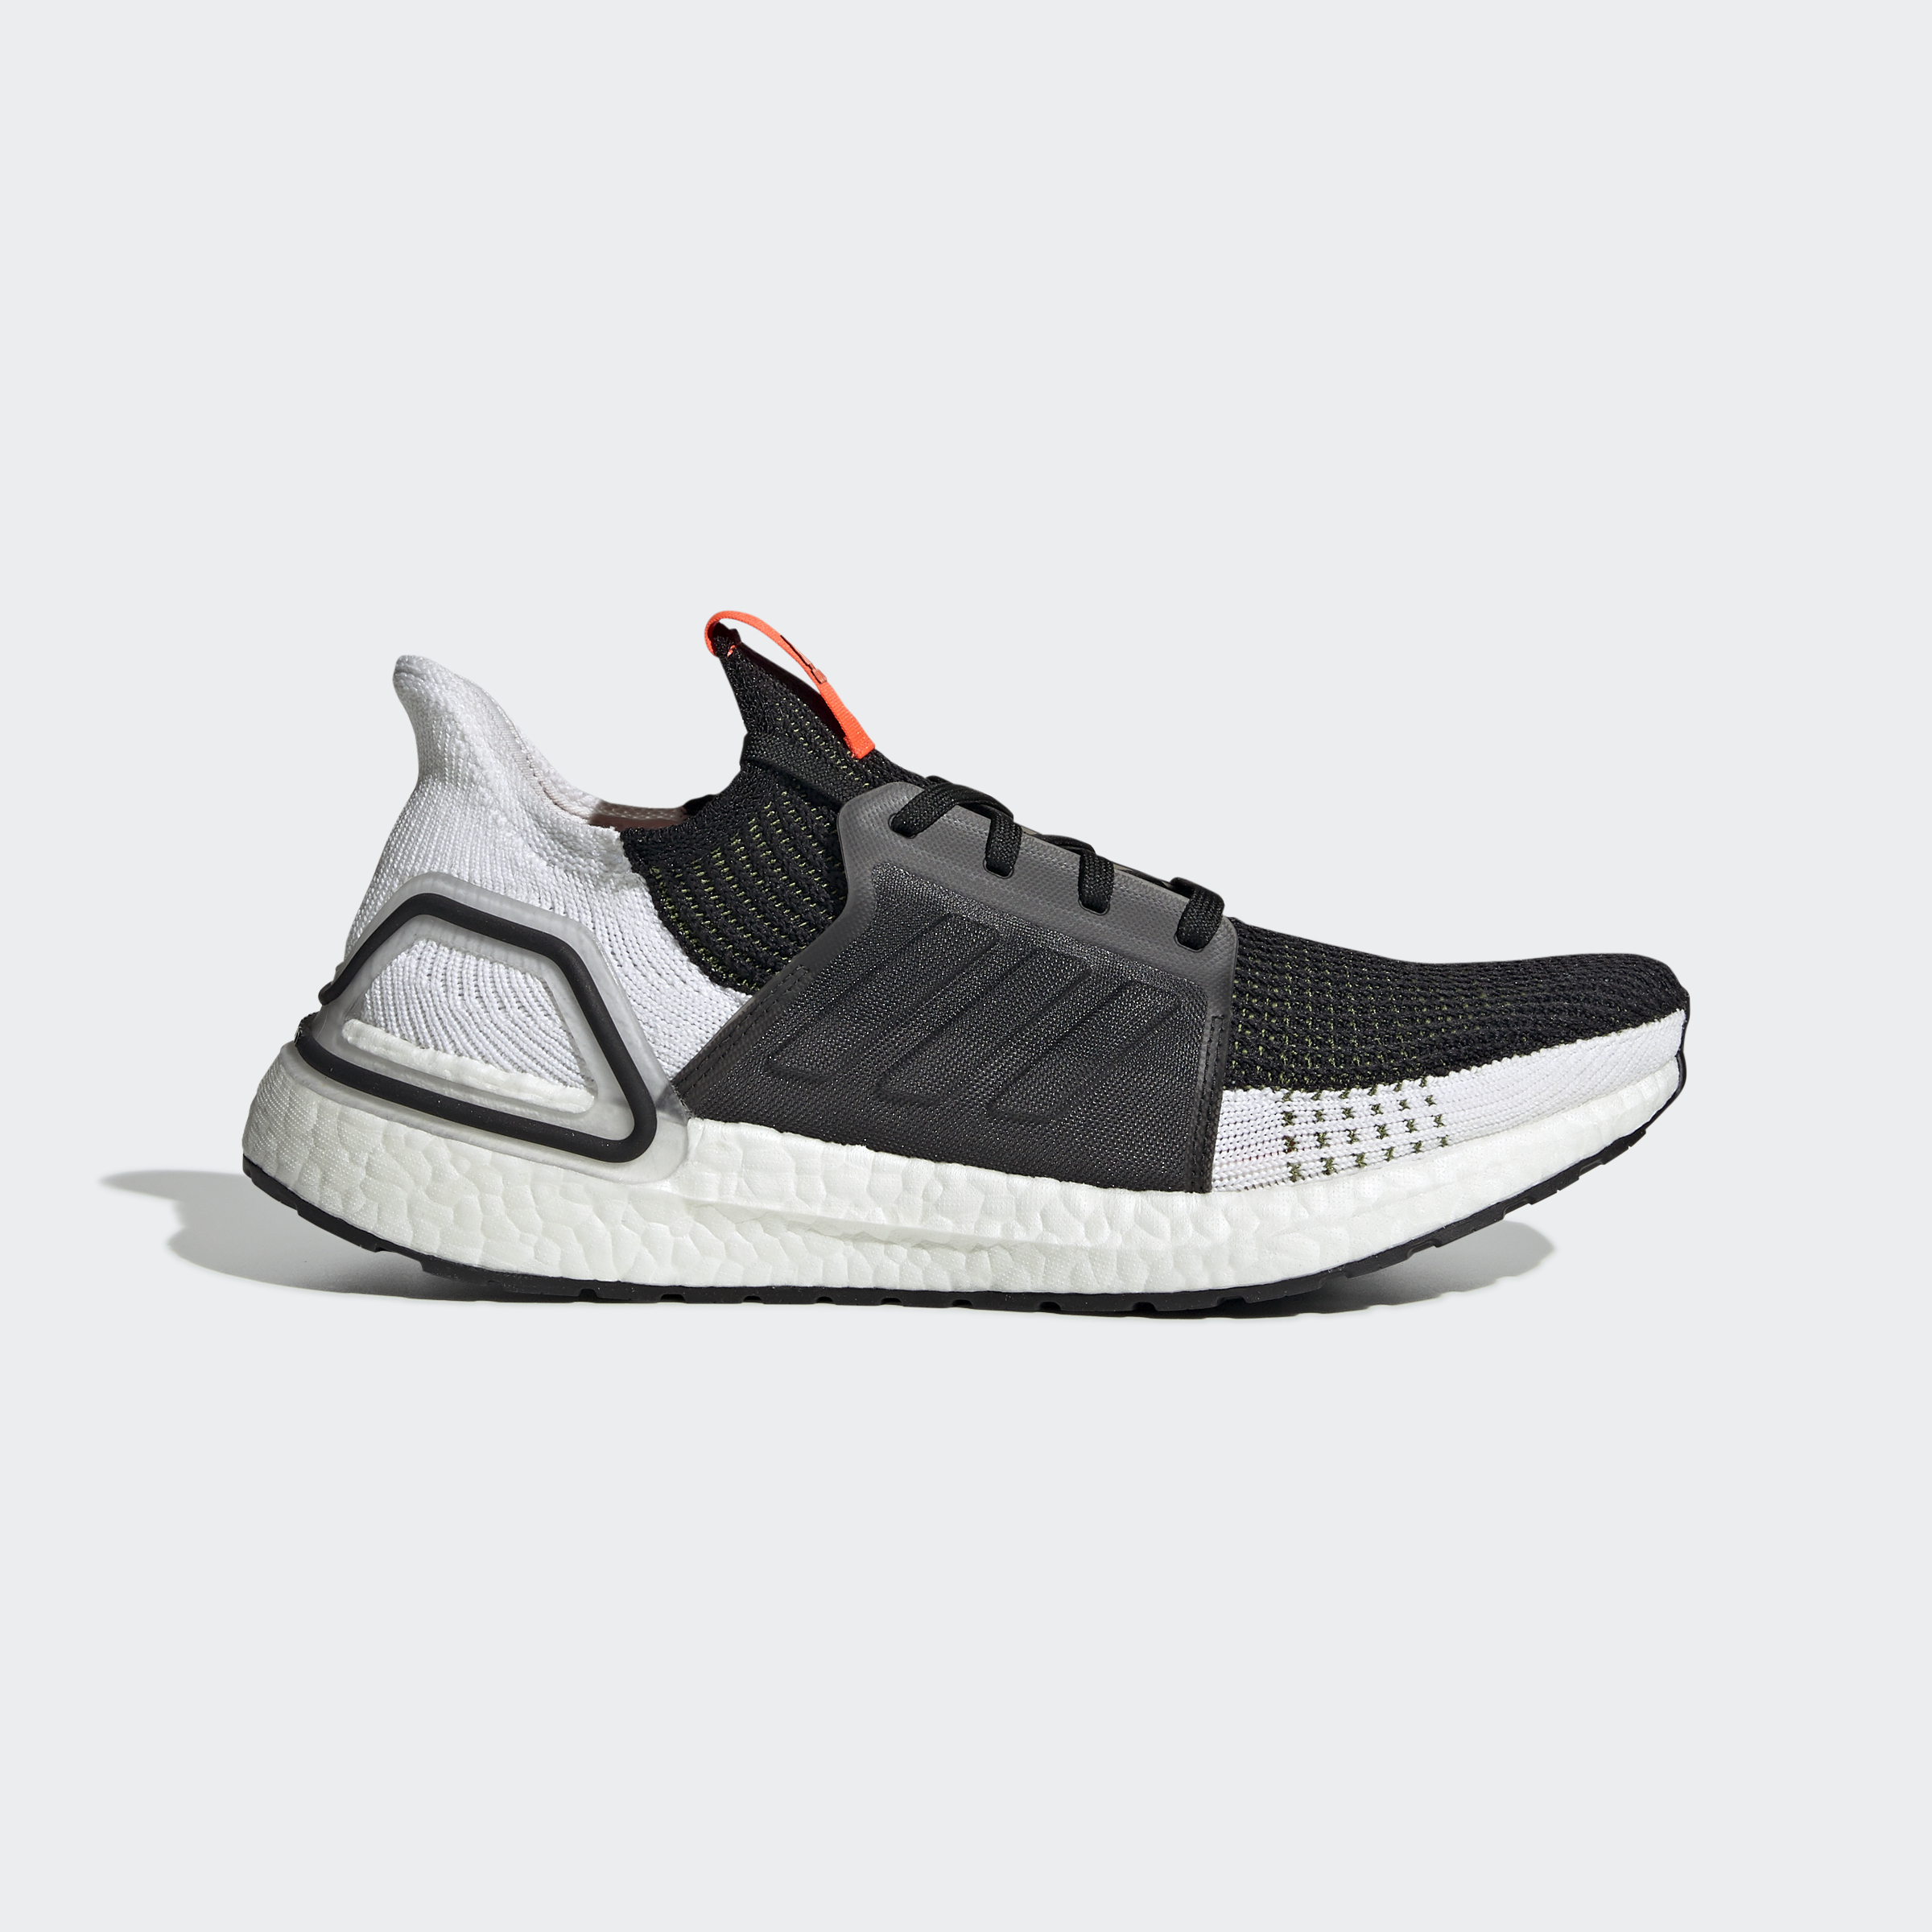 adidas-Ultraboost-19-Shoes-Athletic-amp-Sneakers thumbnail 61